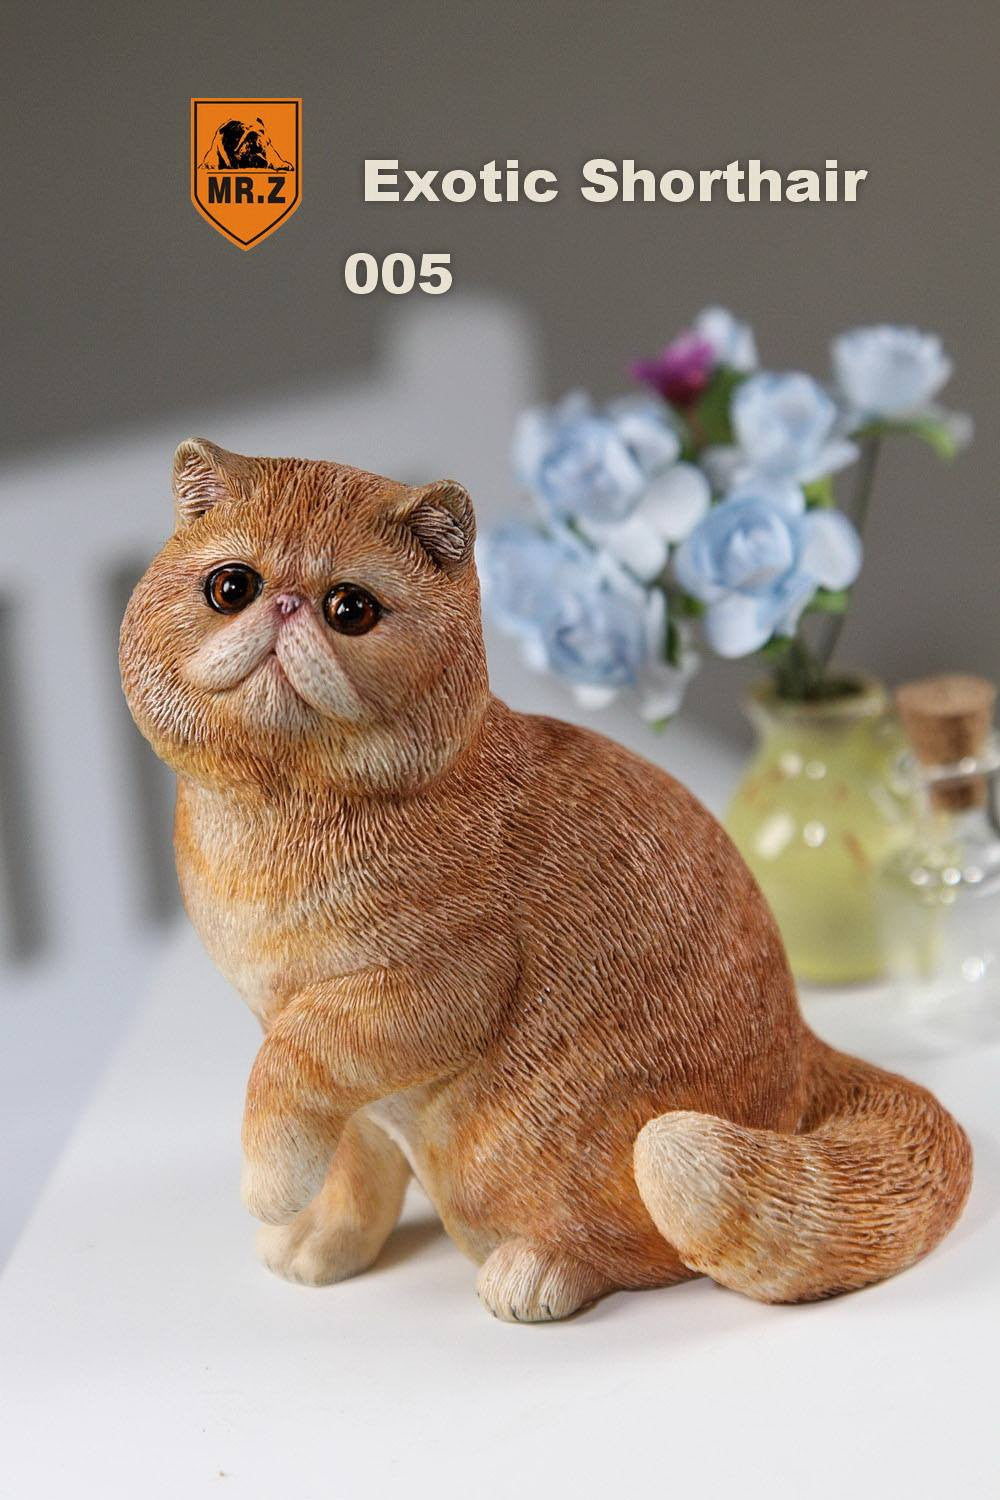 MR.Z - Real Animal Series No.8 - 1/6th Scale Exotic Shorthair Cat (Garfield) 001-005 - Marvelous Toys - 33